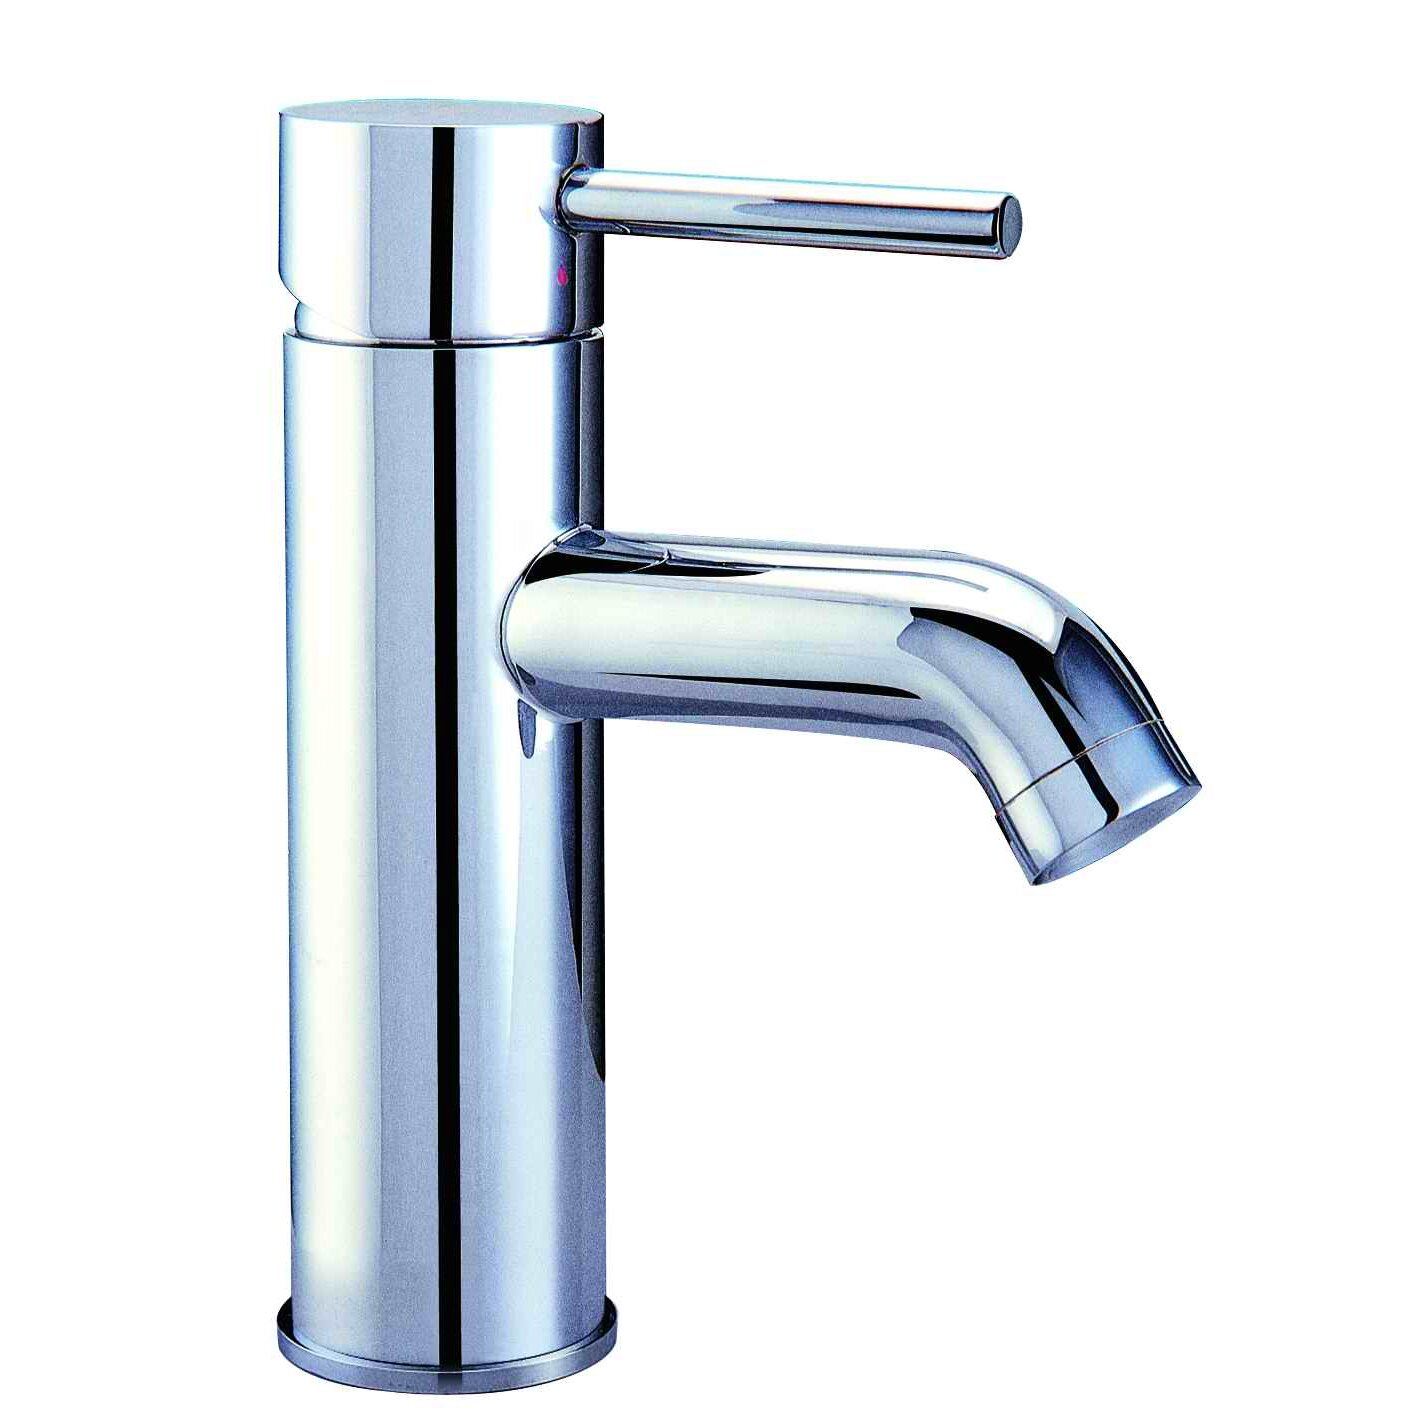 Single Lever Bathroom Faucets: Alfi Brand Single Handle Bathroom Faucet & Reviews